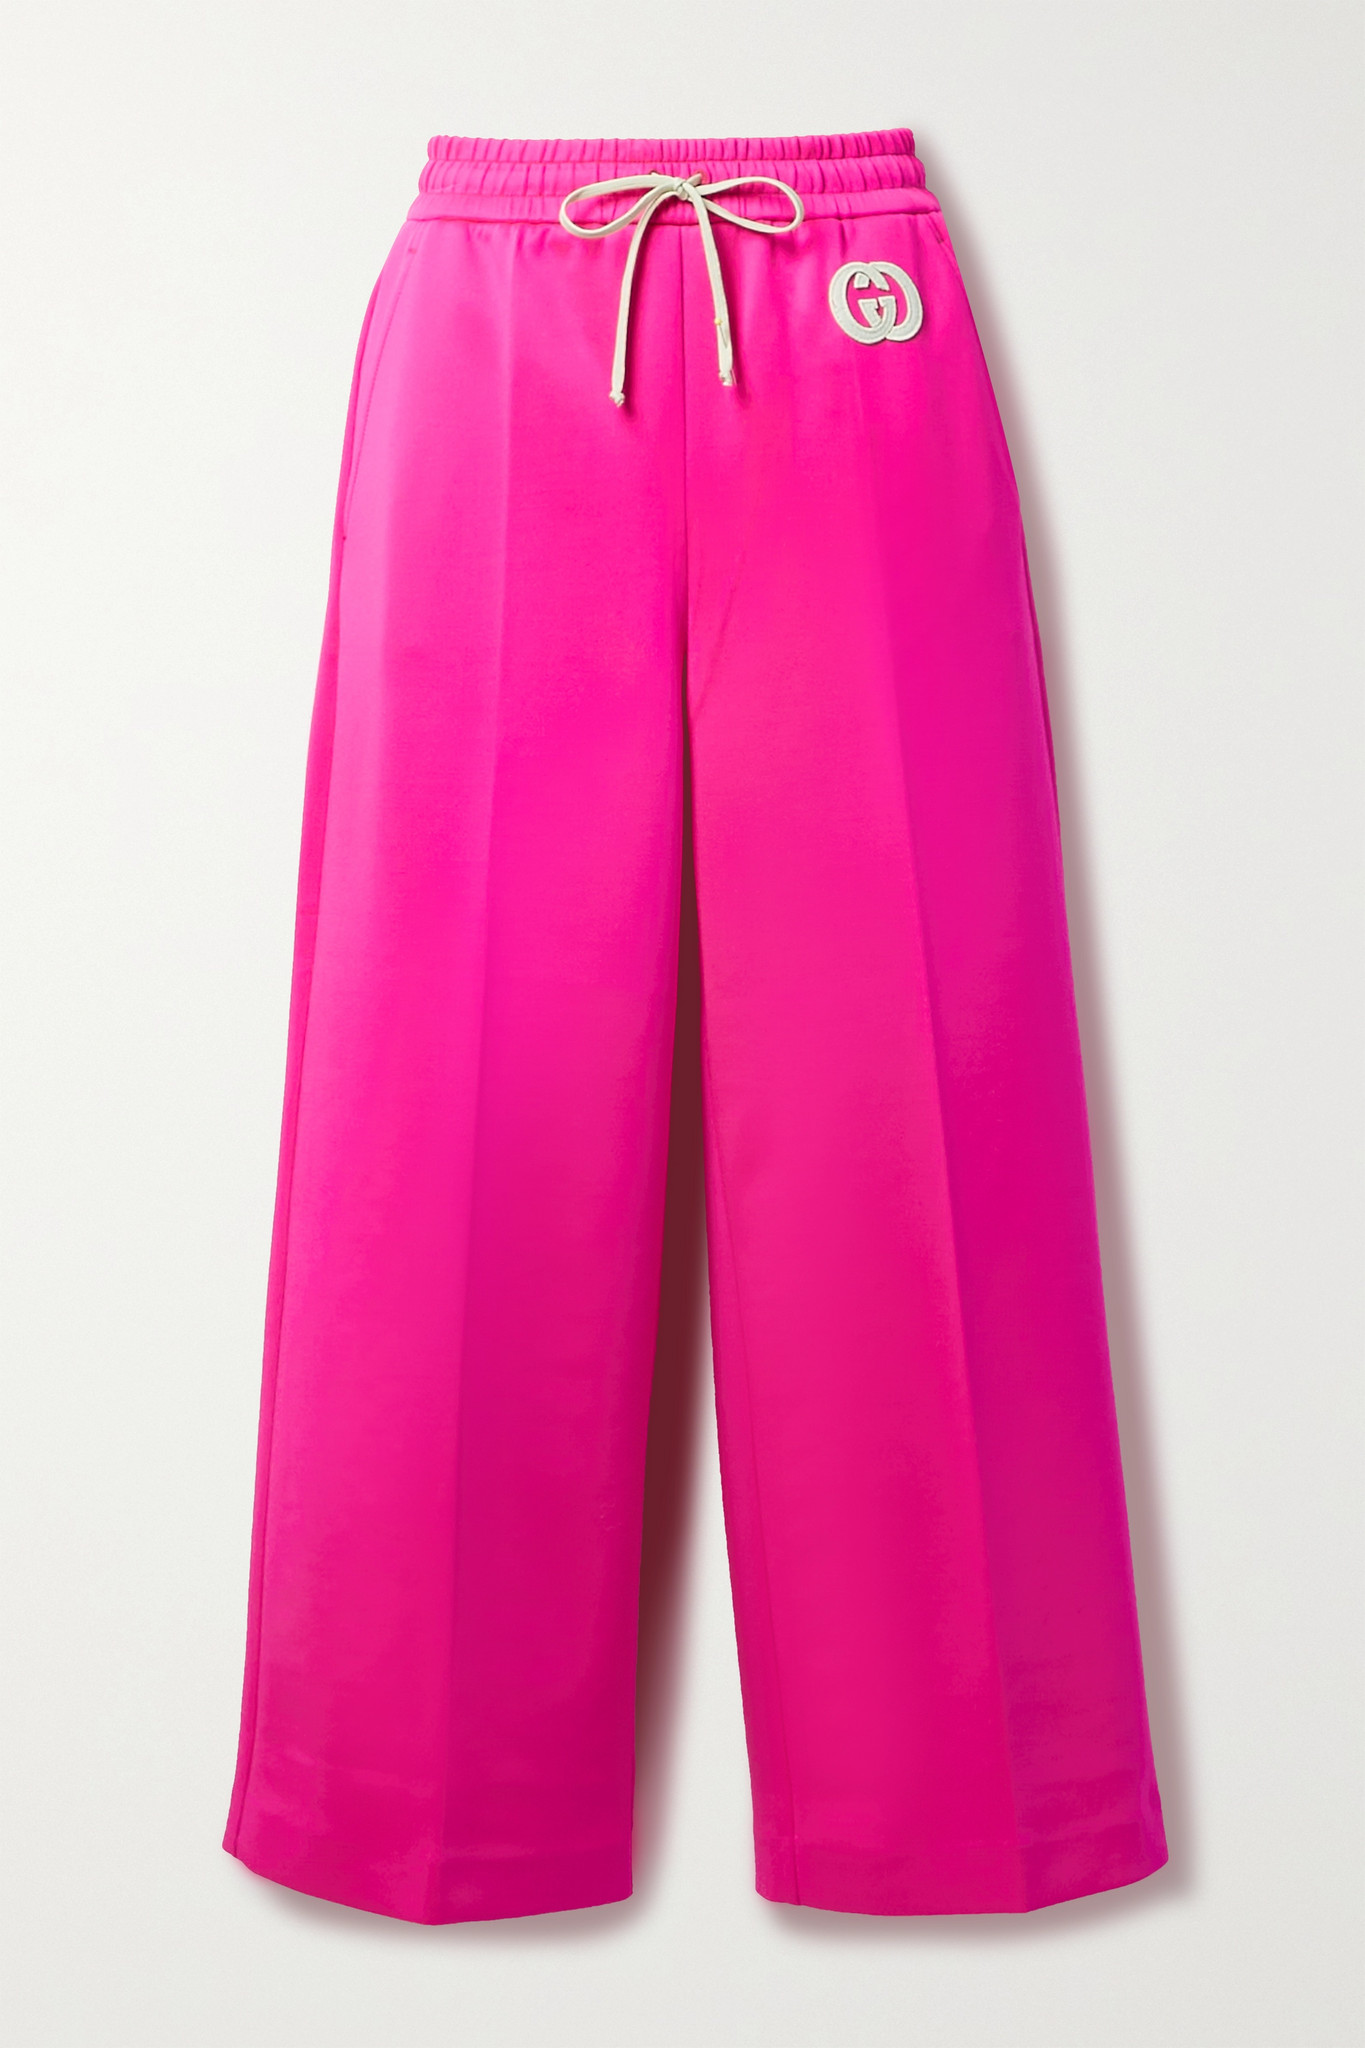 GUCCI - Cropped Appliquéd Neon Stretch-jersey Wide-leg Track Pants - Pink - x small